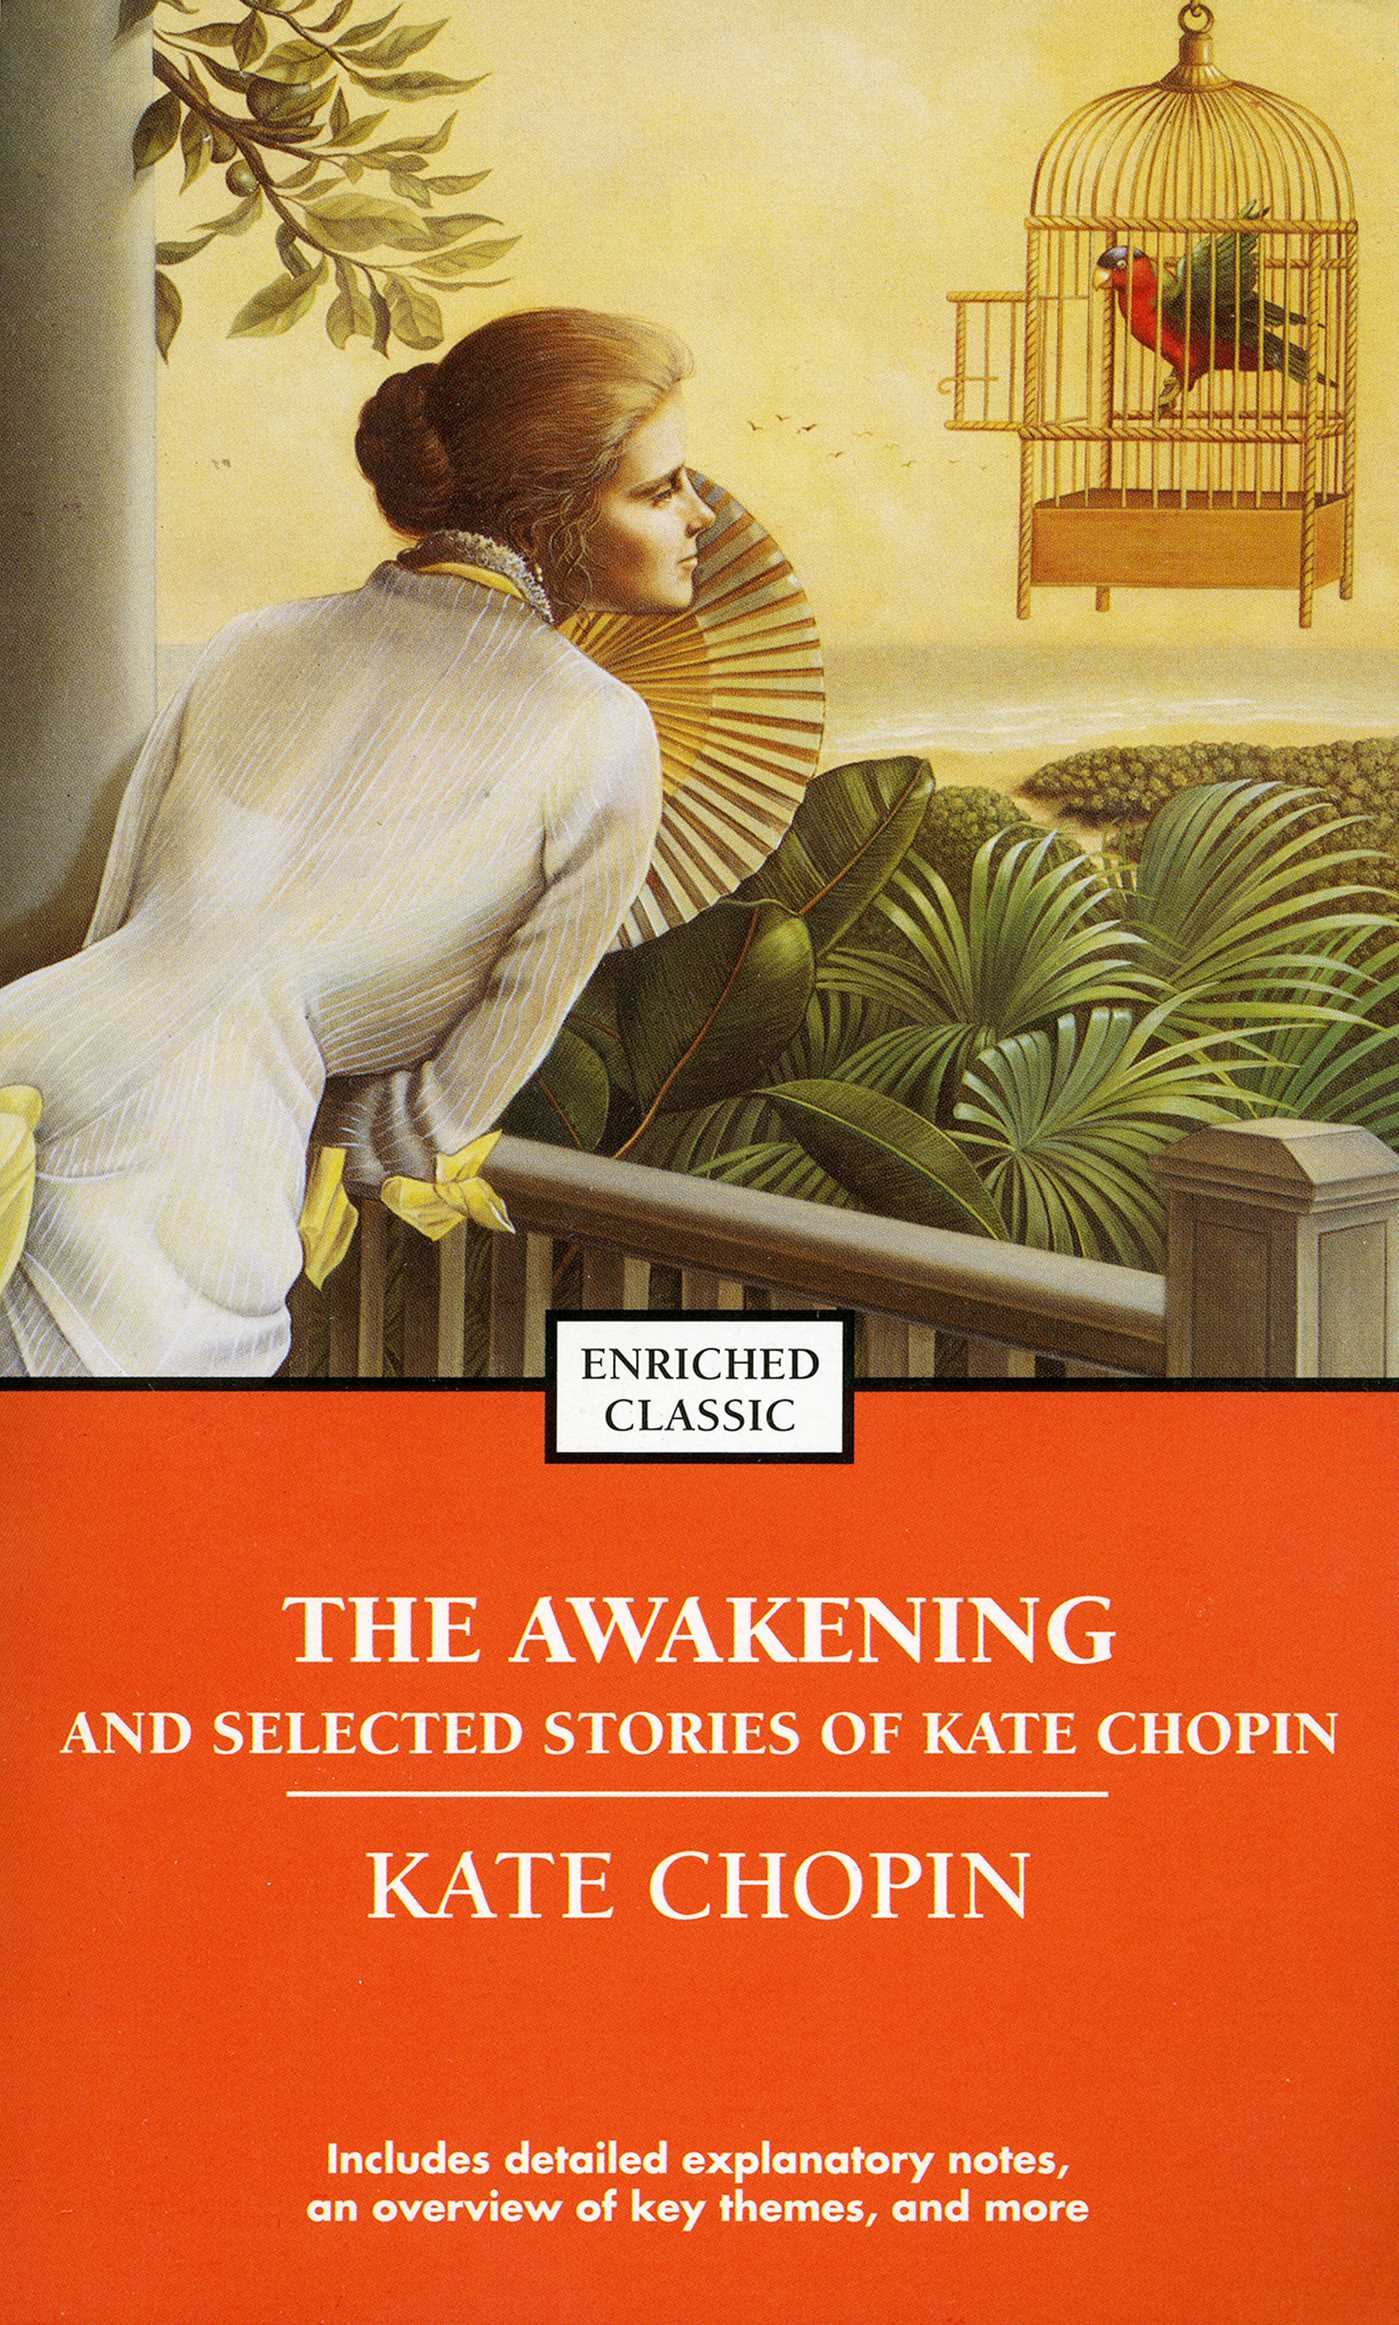 an examination of the novel the awakening by kate chopin In kate chopin's novel, the awakening, the reader is introduced to edna pontellier, a through the examination of kate chopin's novel, the awakening microsoft word - the awakening essaydocx.